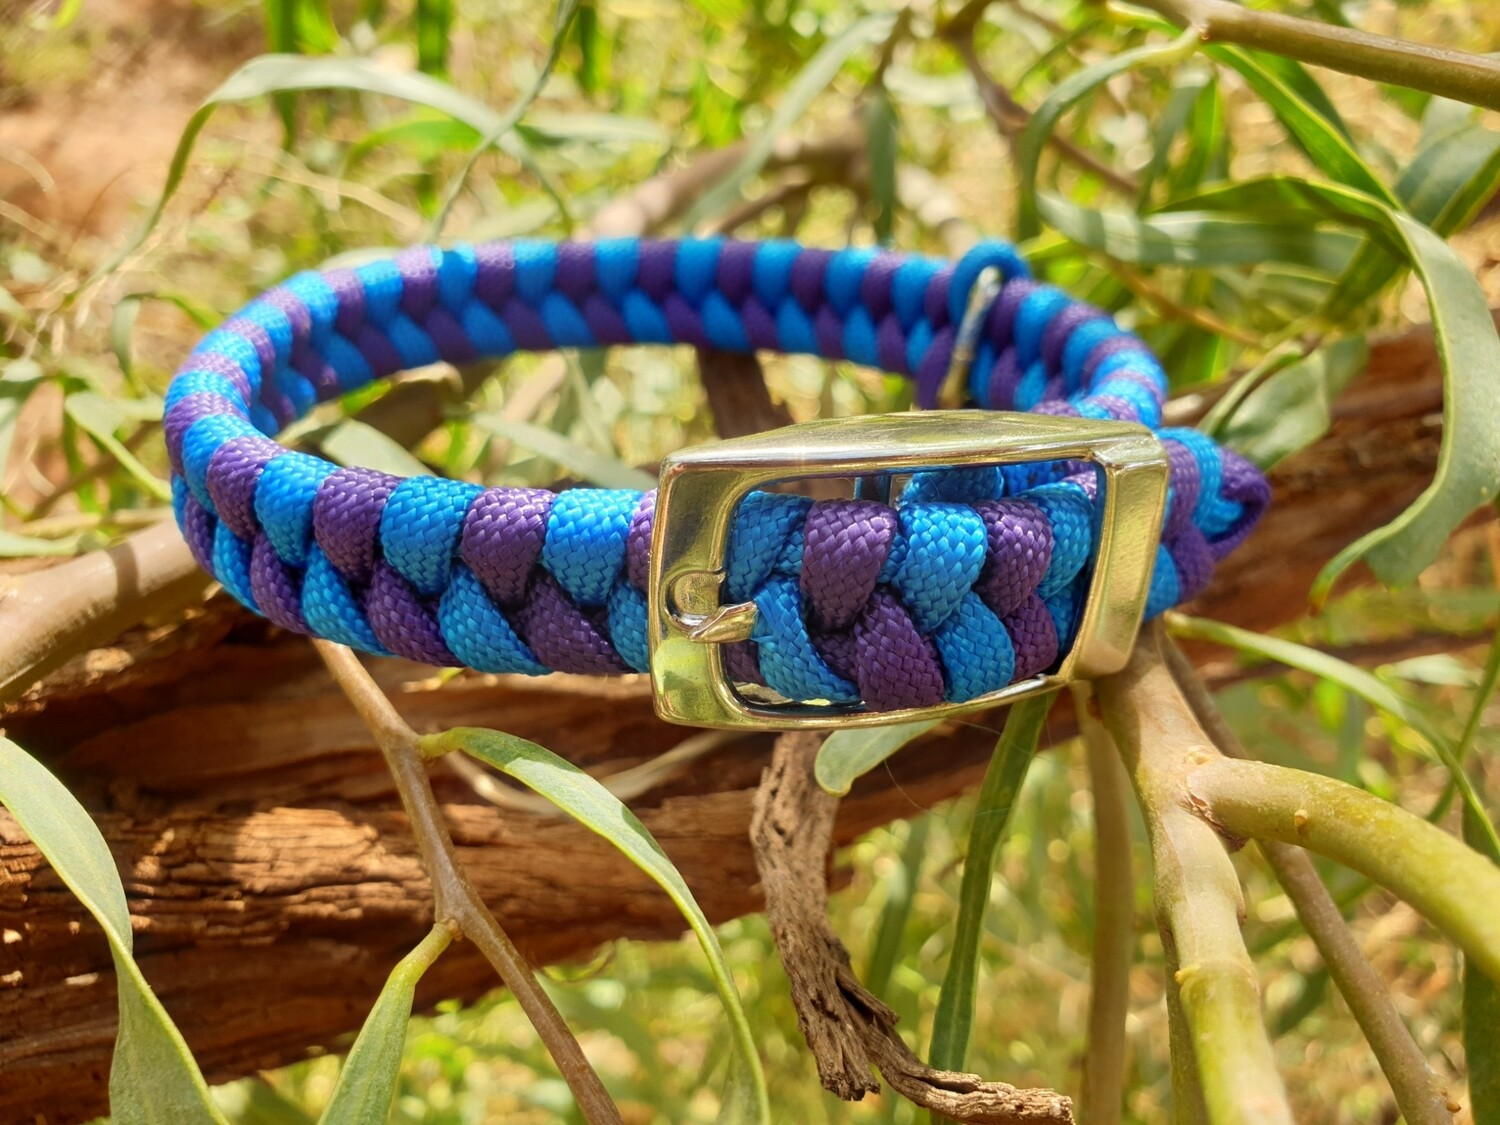 Blue and Purple x-small dog collar